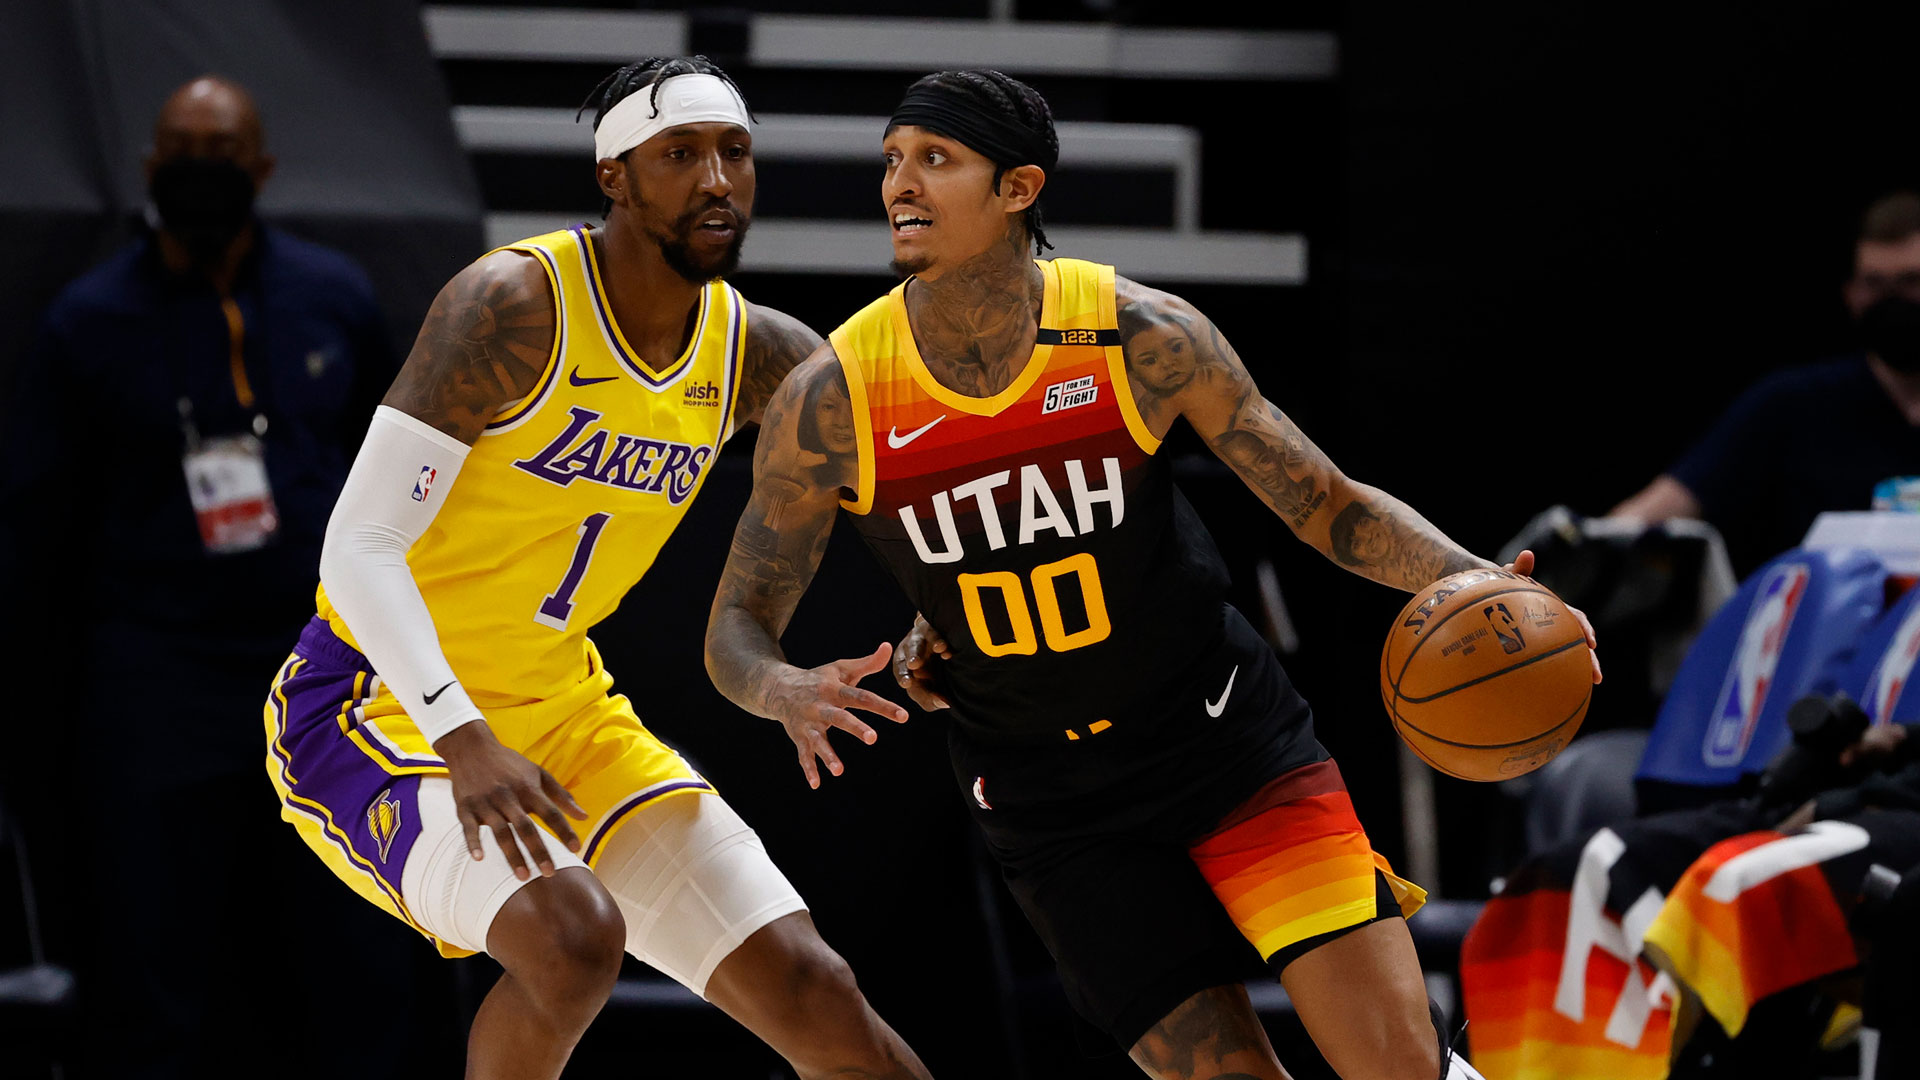 Banged-up Lakers, Jazz look to get on track in matinee